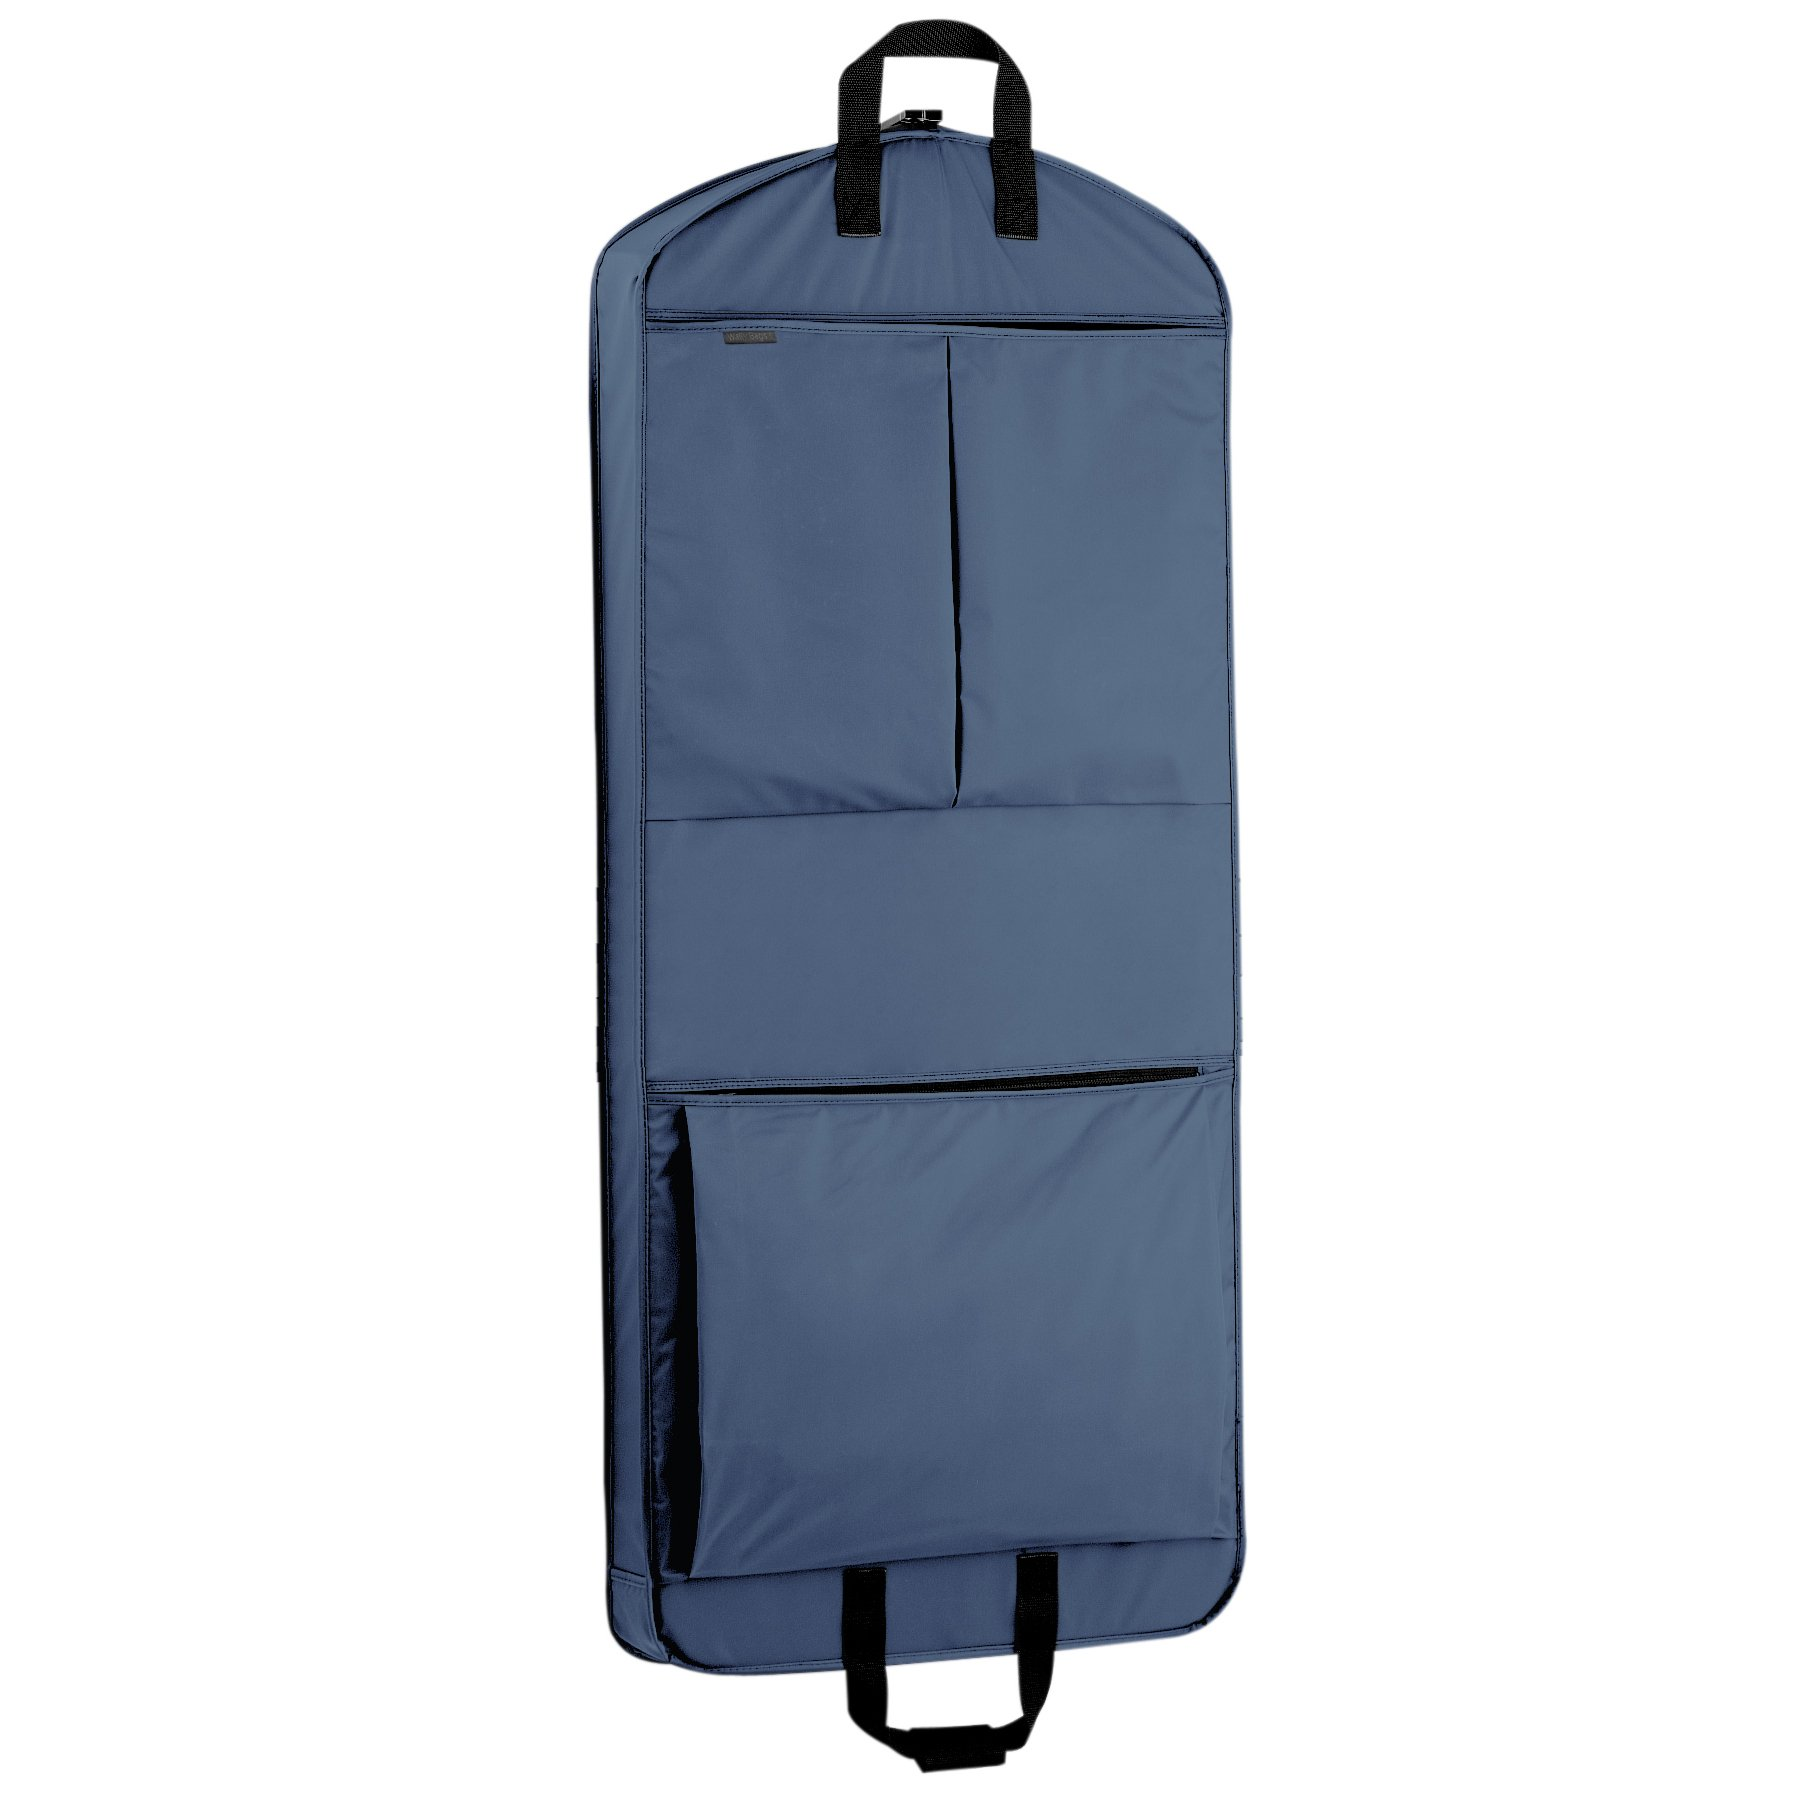 WallyBags Luggage 52'' Extra Capacity Garment Bag with Pockets, Navy